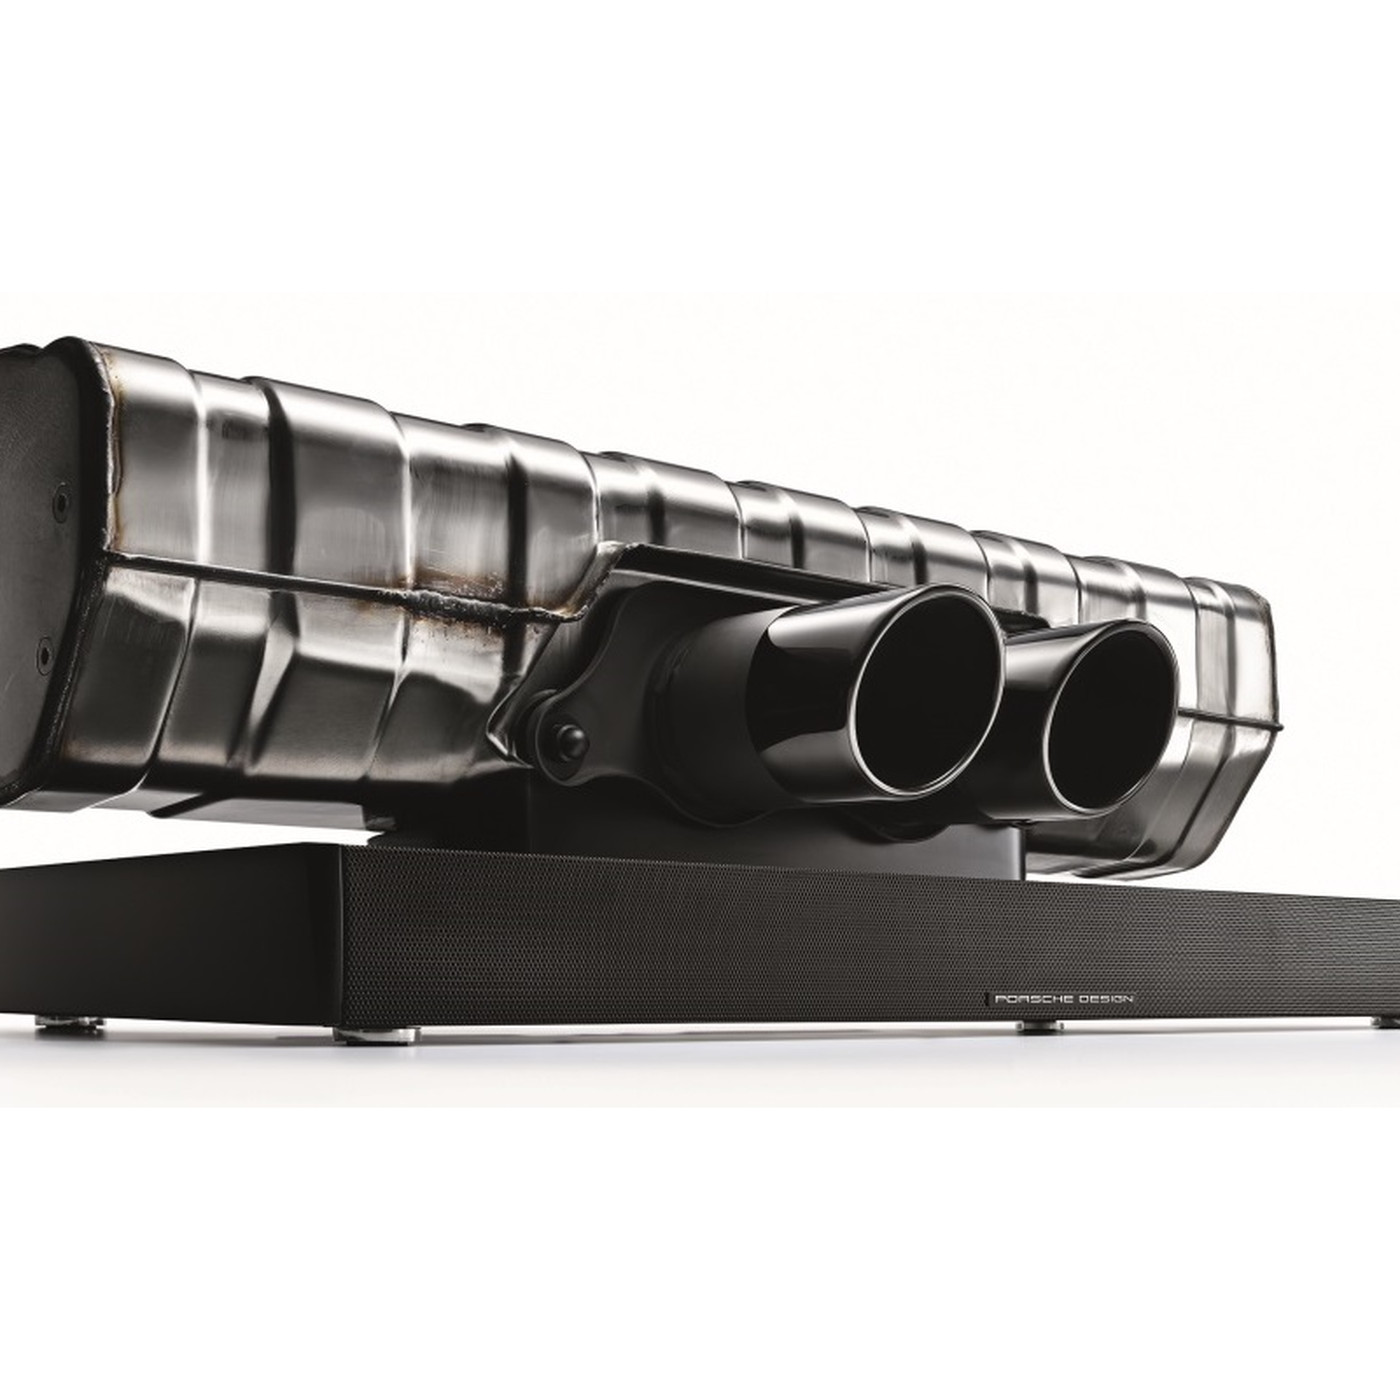 Porsche Design Also Has A Car Exhaust Speaker To Sell You The Verge